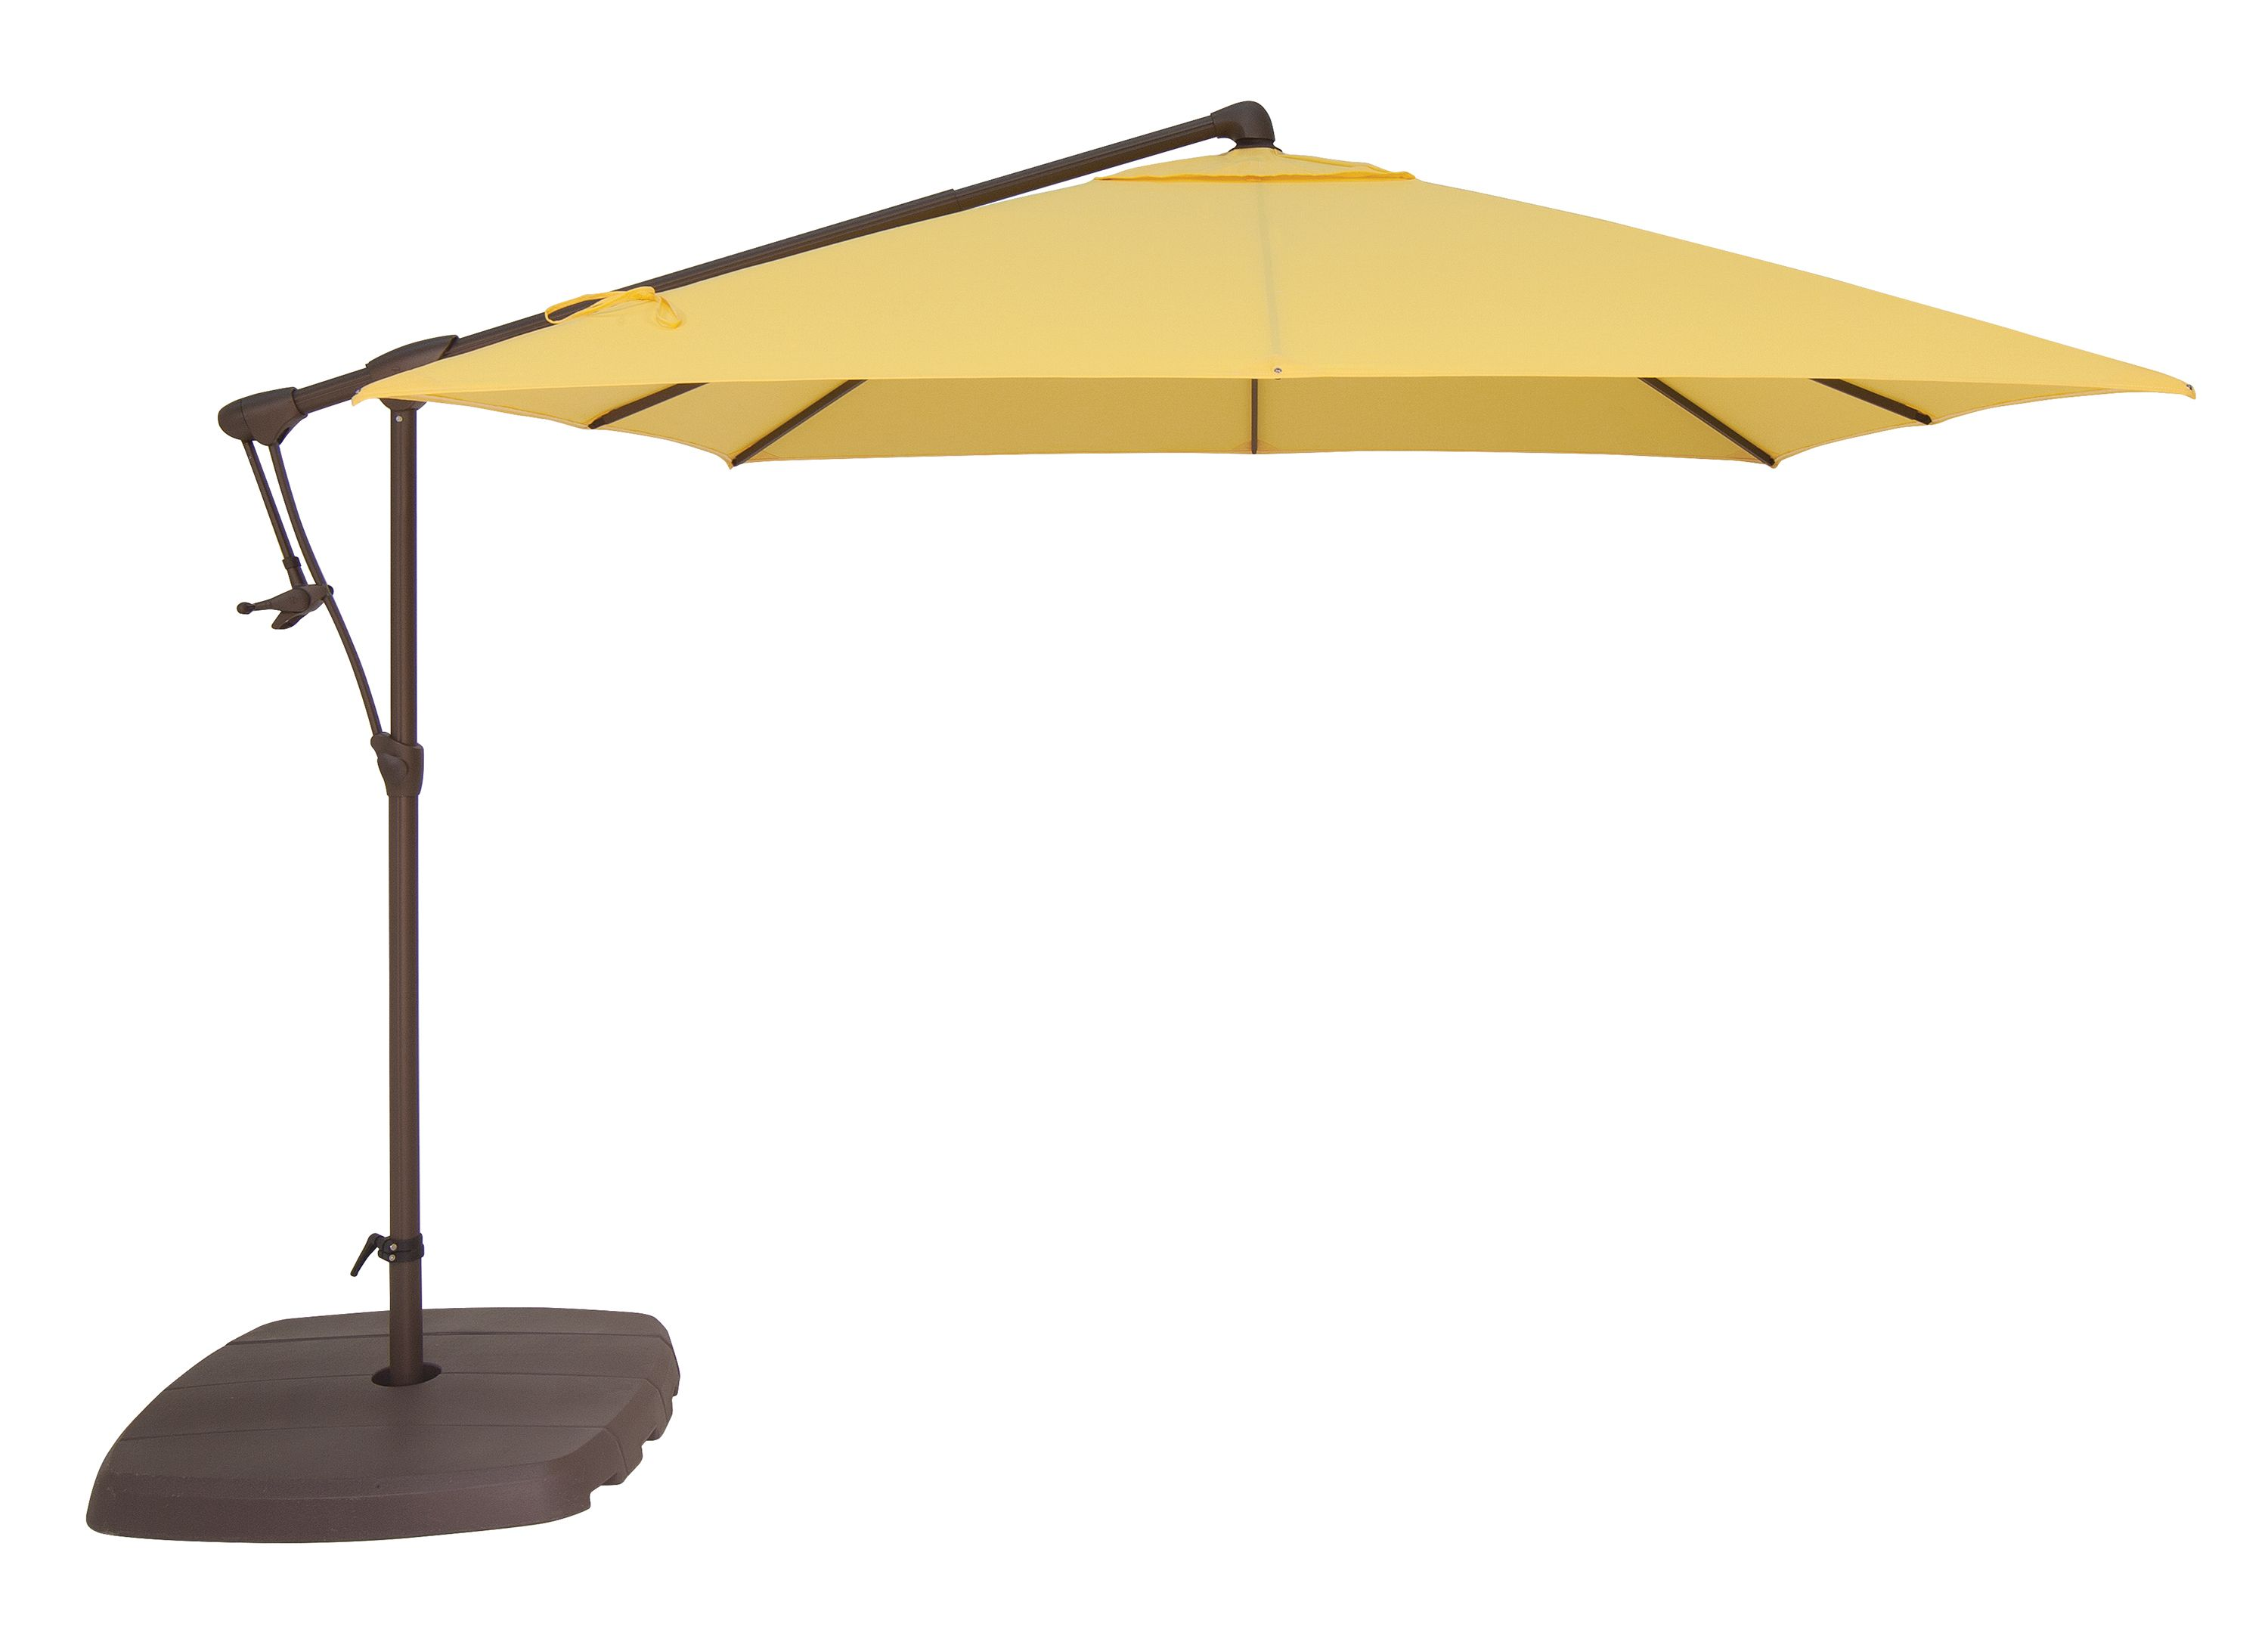 The Ag19 By Treasure Garden Is A Slender Cantilever Option With The Same Great Features As A Larger Cantilever Cantilever Umbrella Patio Umbrella Outdoor Decor